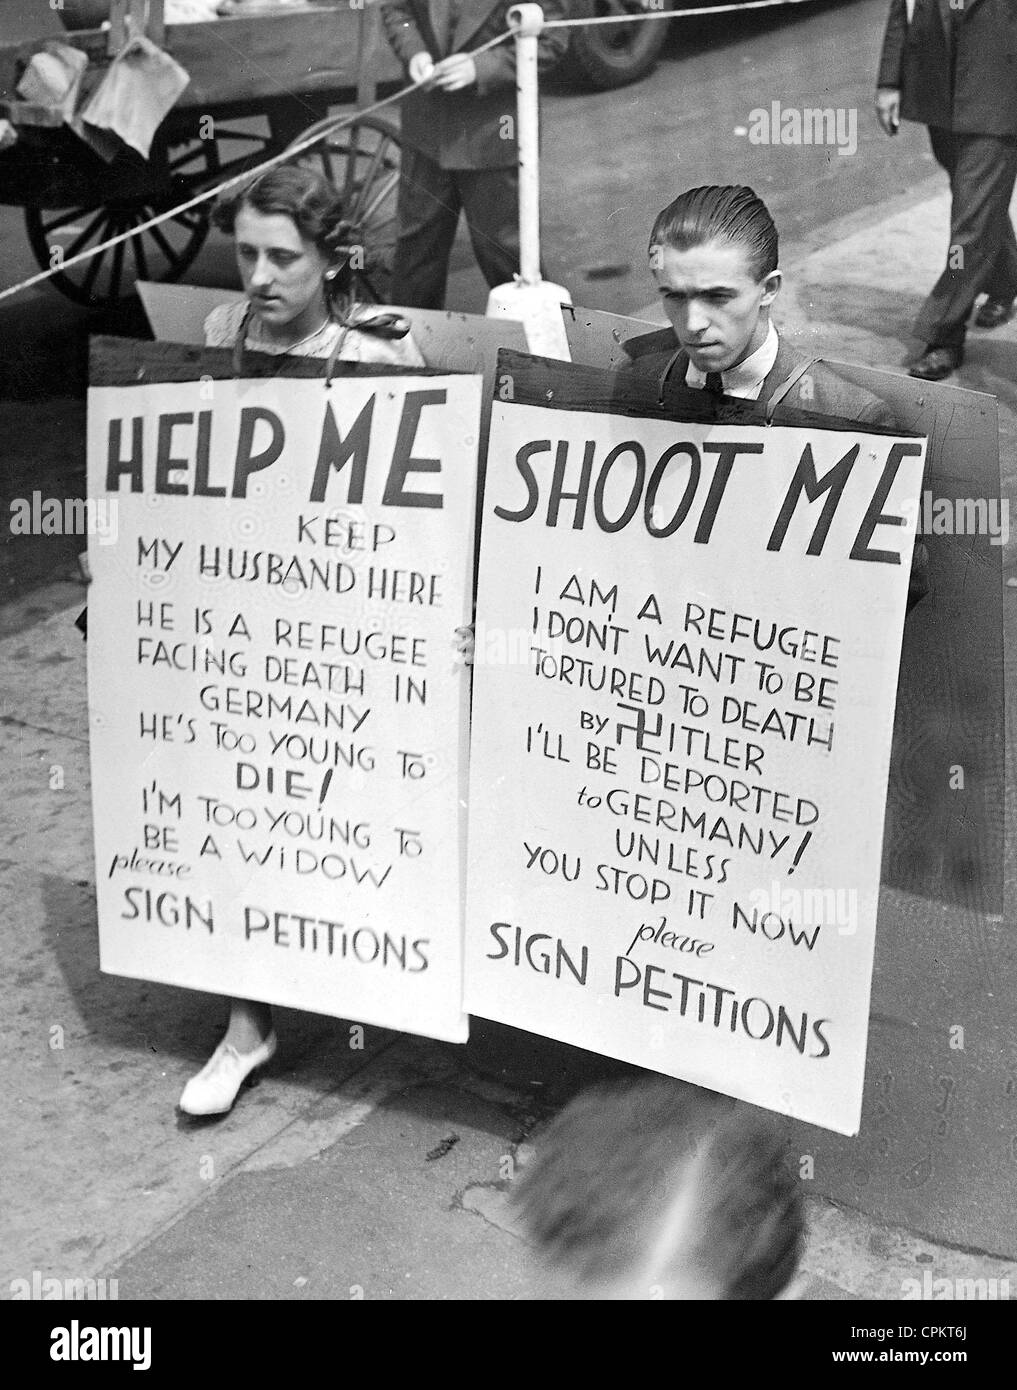 Otto Richter, a German Jew, and his wife protest against his deportation to Germany by the US immigration authorities, Stock Photo